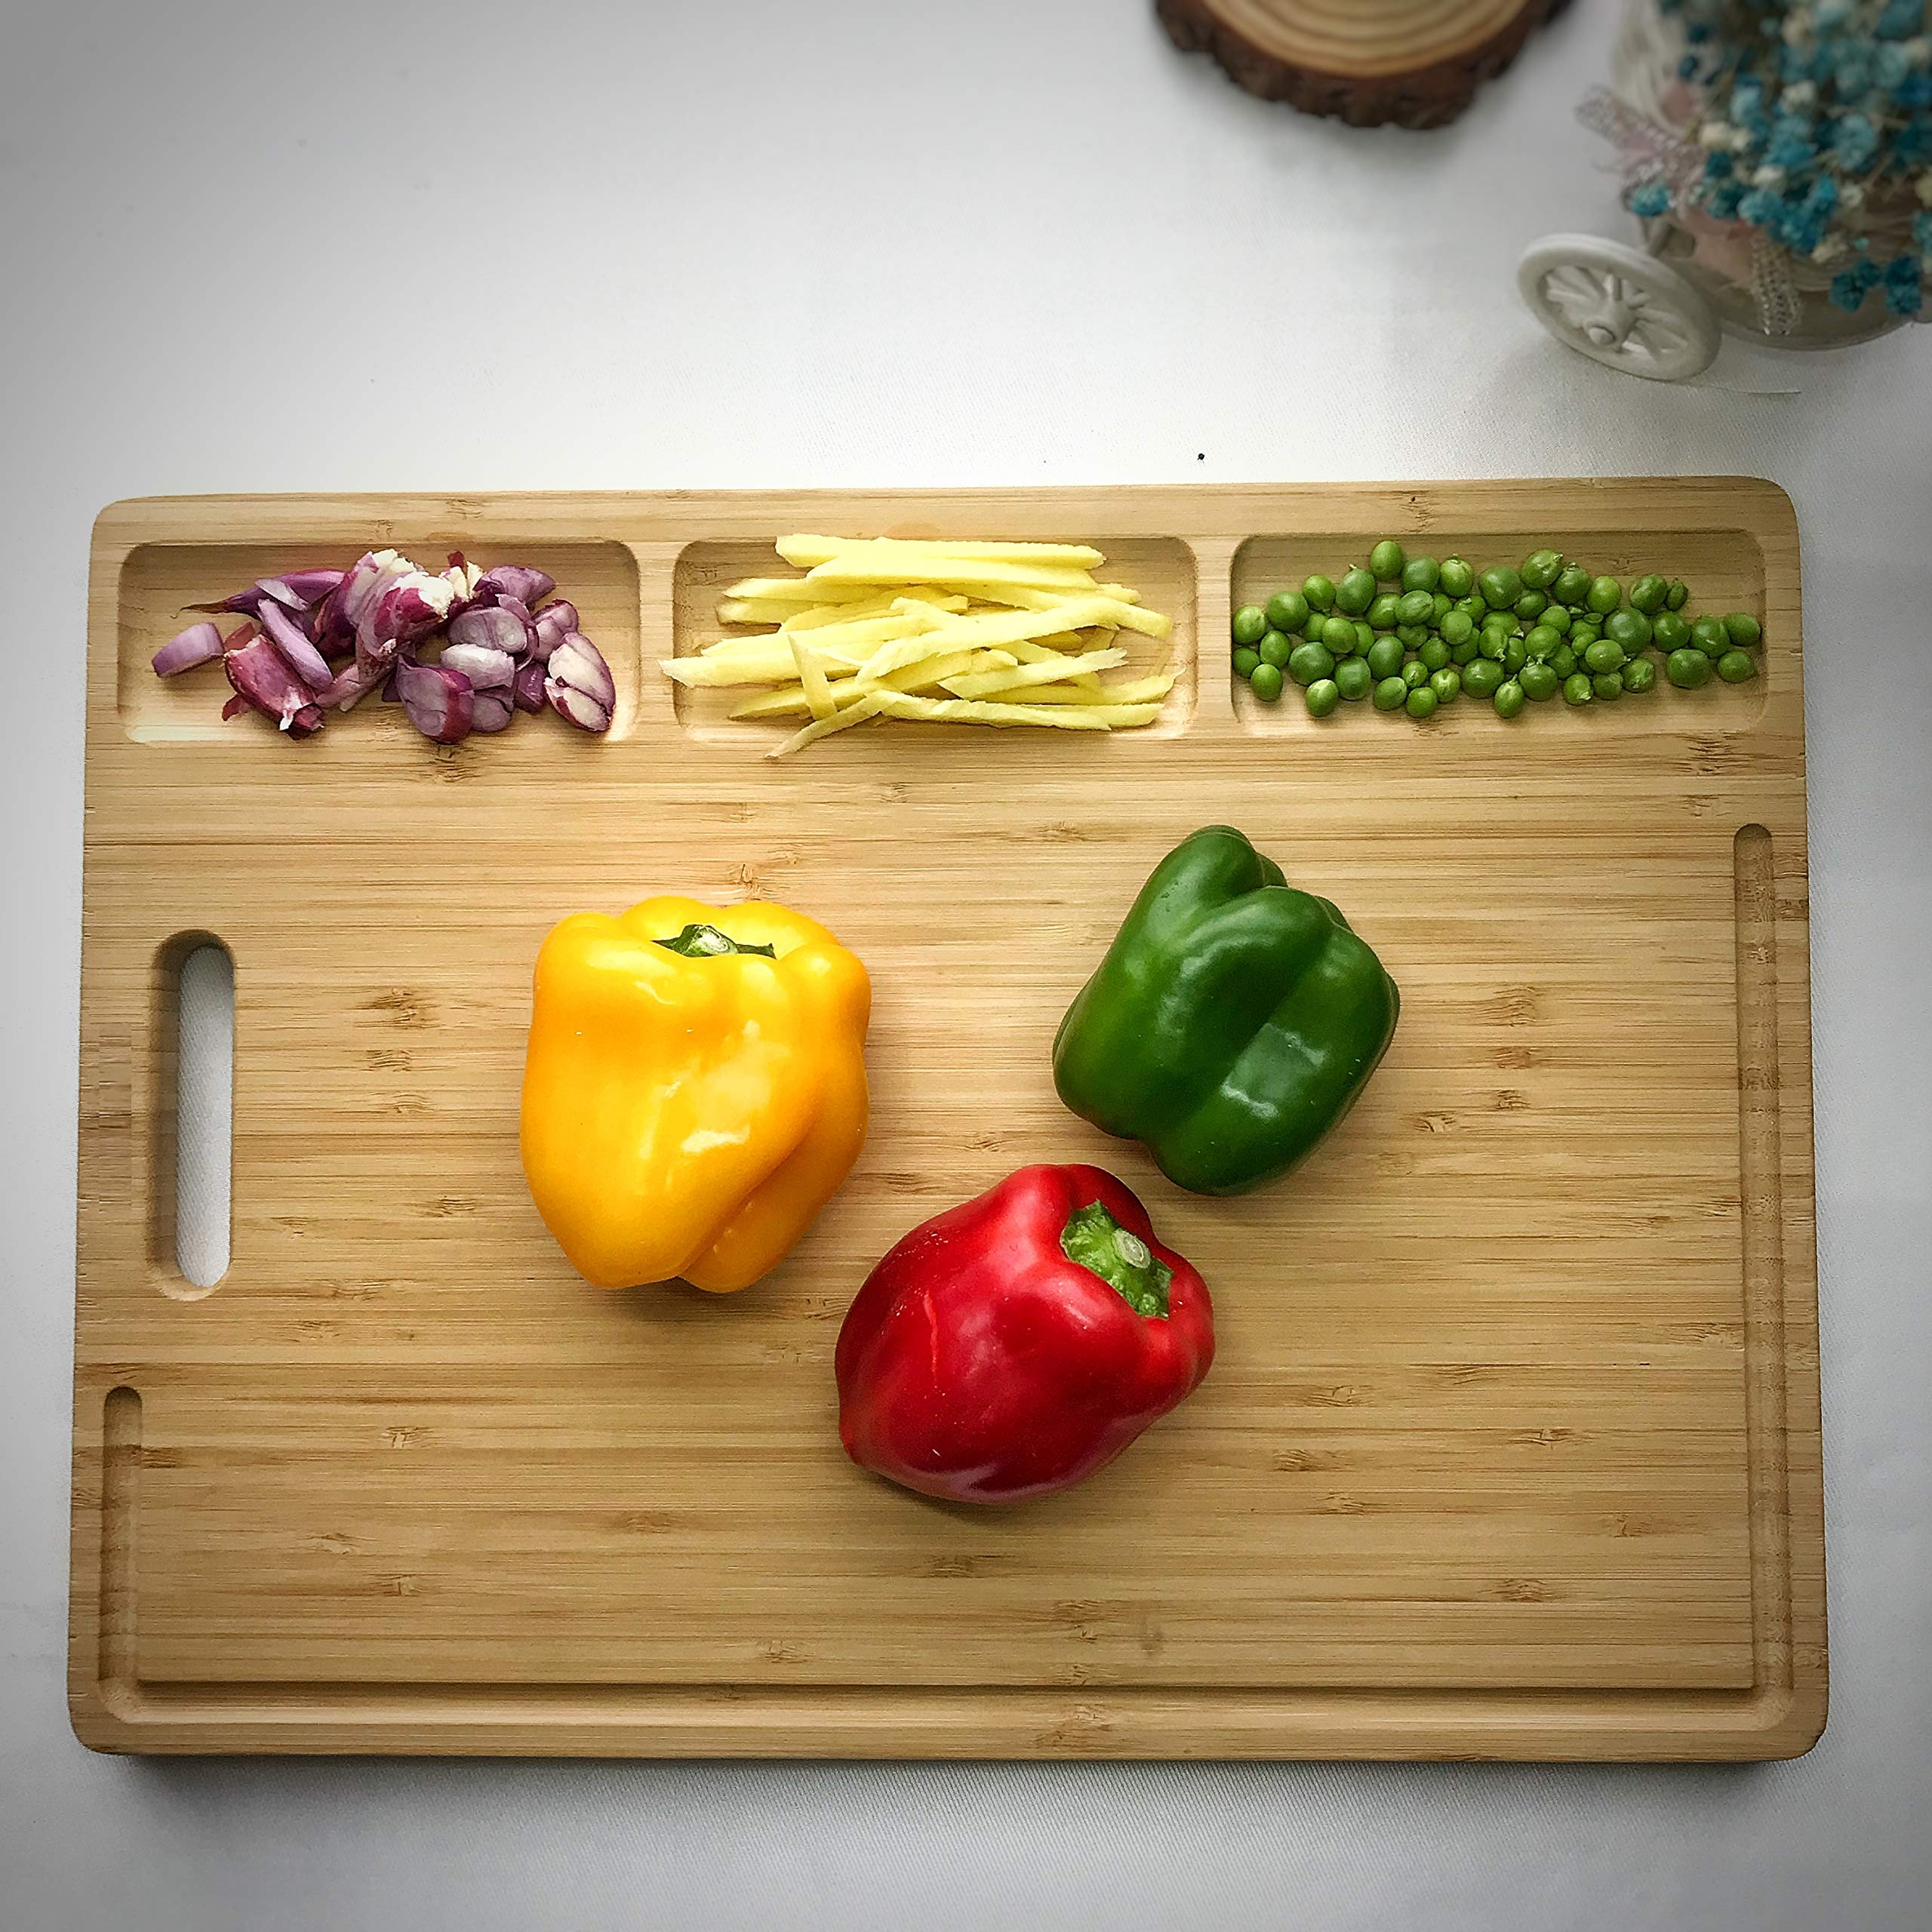 HHXRISE Venfon Large Organic Bamboo Cutting Board For Kitchen, With 3 Built-In Compartments And Juice Grooves, Heavy Duty Chopping Board For Meats Bread Fruits, Butcher Block, Carving Board, BPA Free by HHXRISE (Image #6)